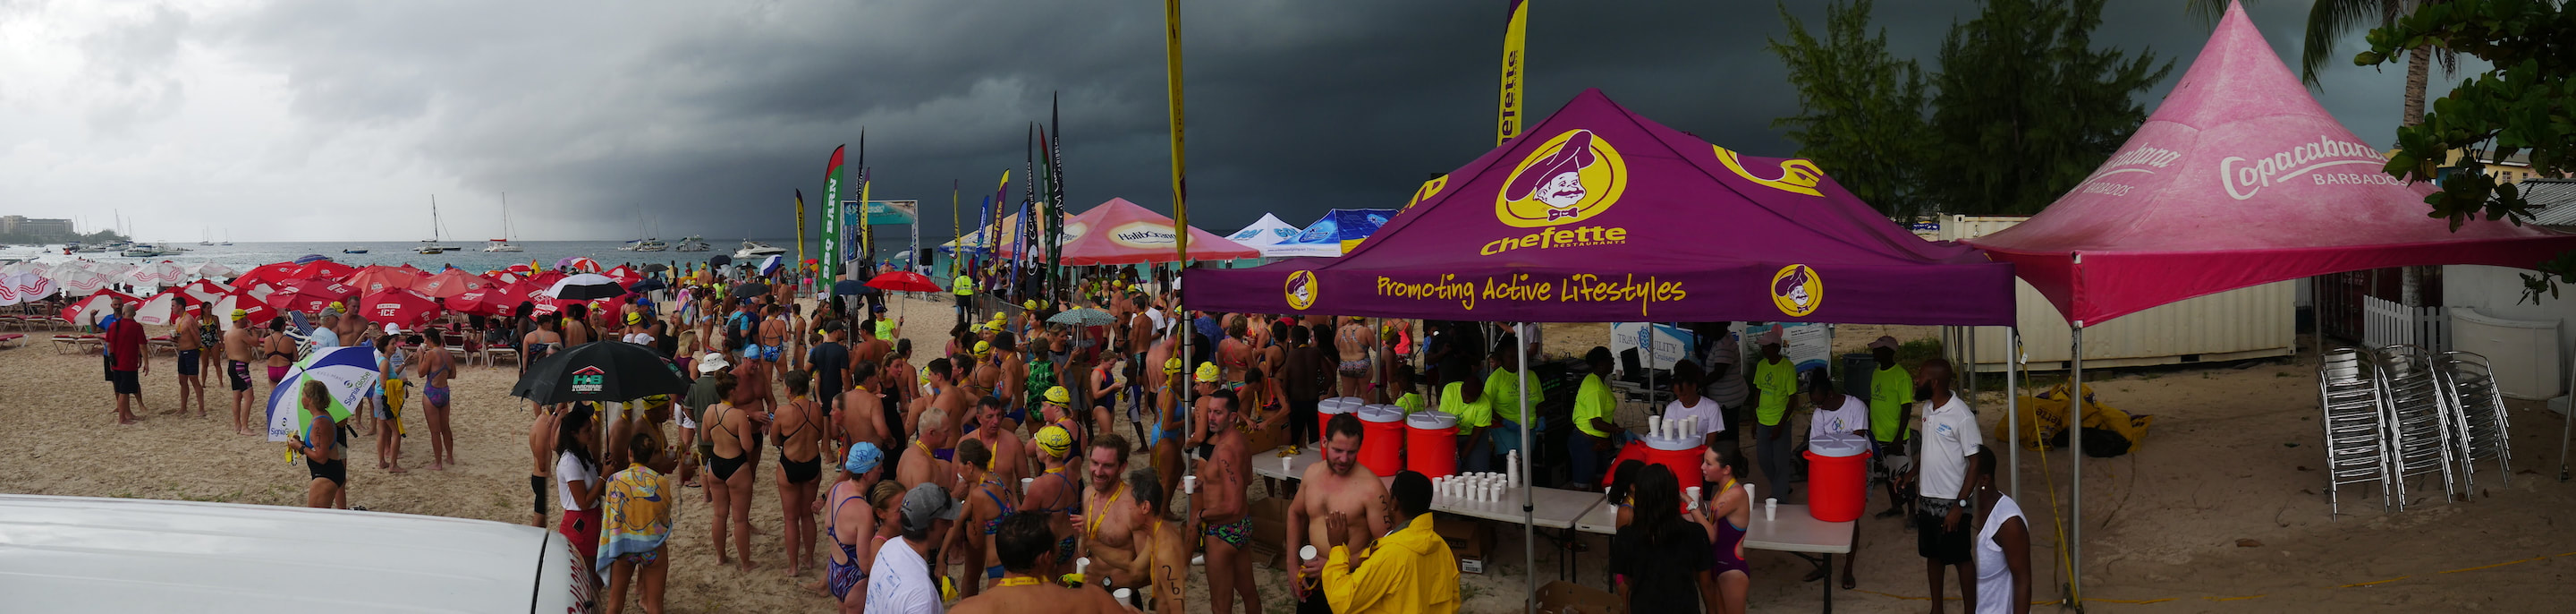 Barbados Open Water Festival 2019 - Cloudy Day